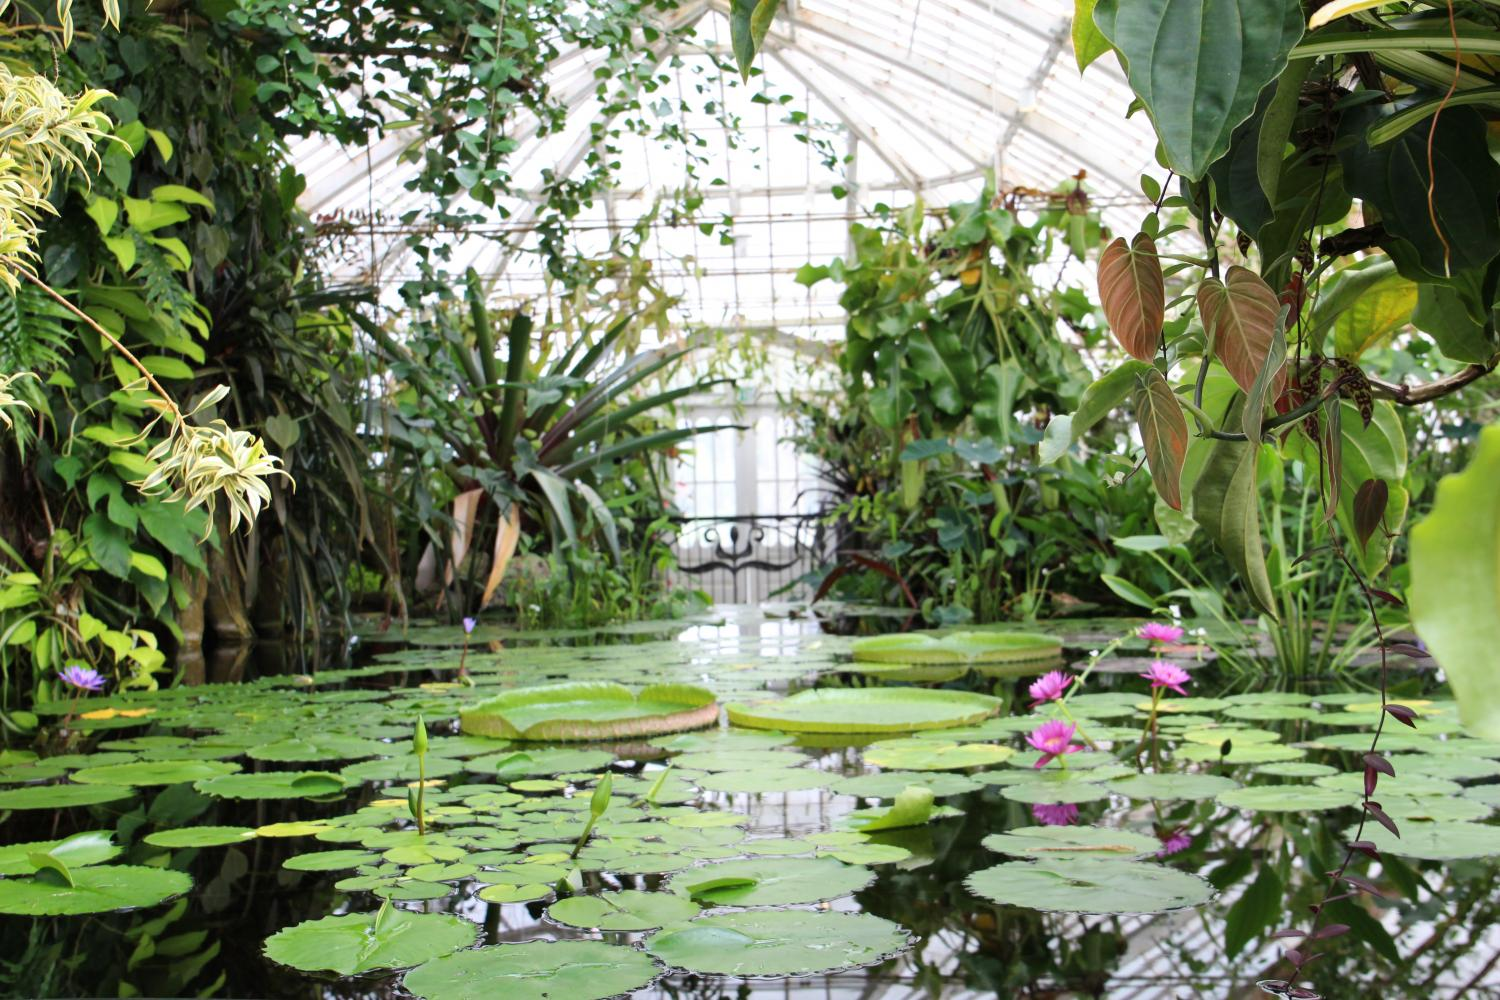 The Conservatory's Aquatics contains a myriad of diverse plants within its pond ecosystem, including the water lily.